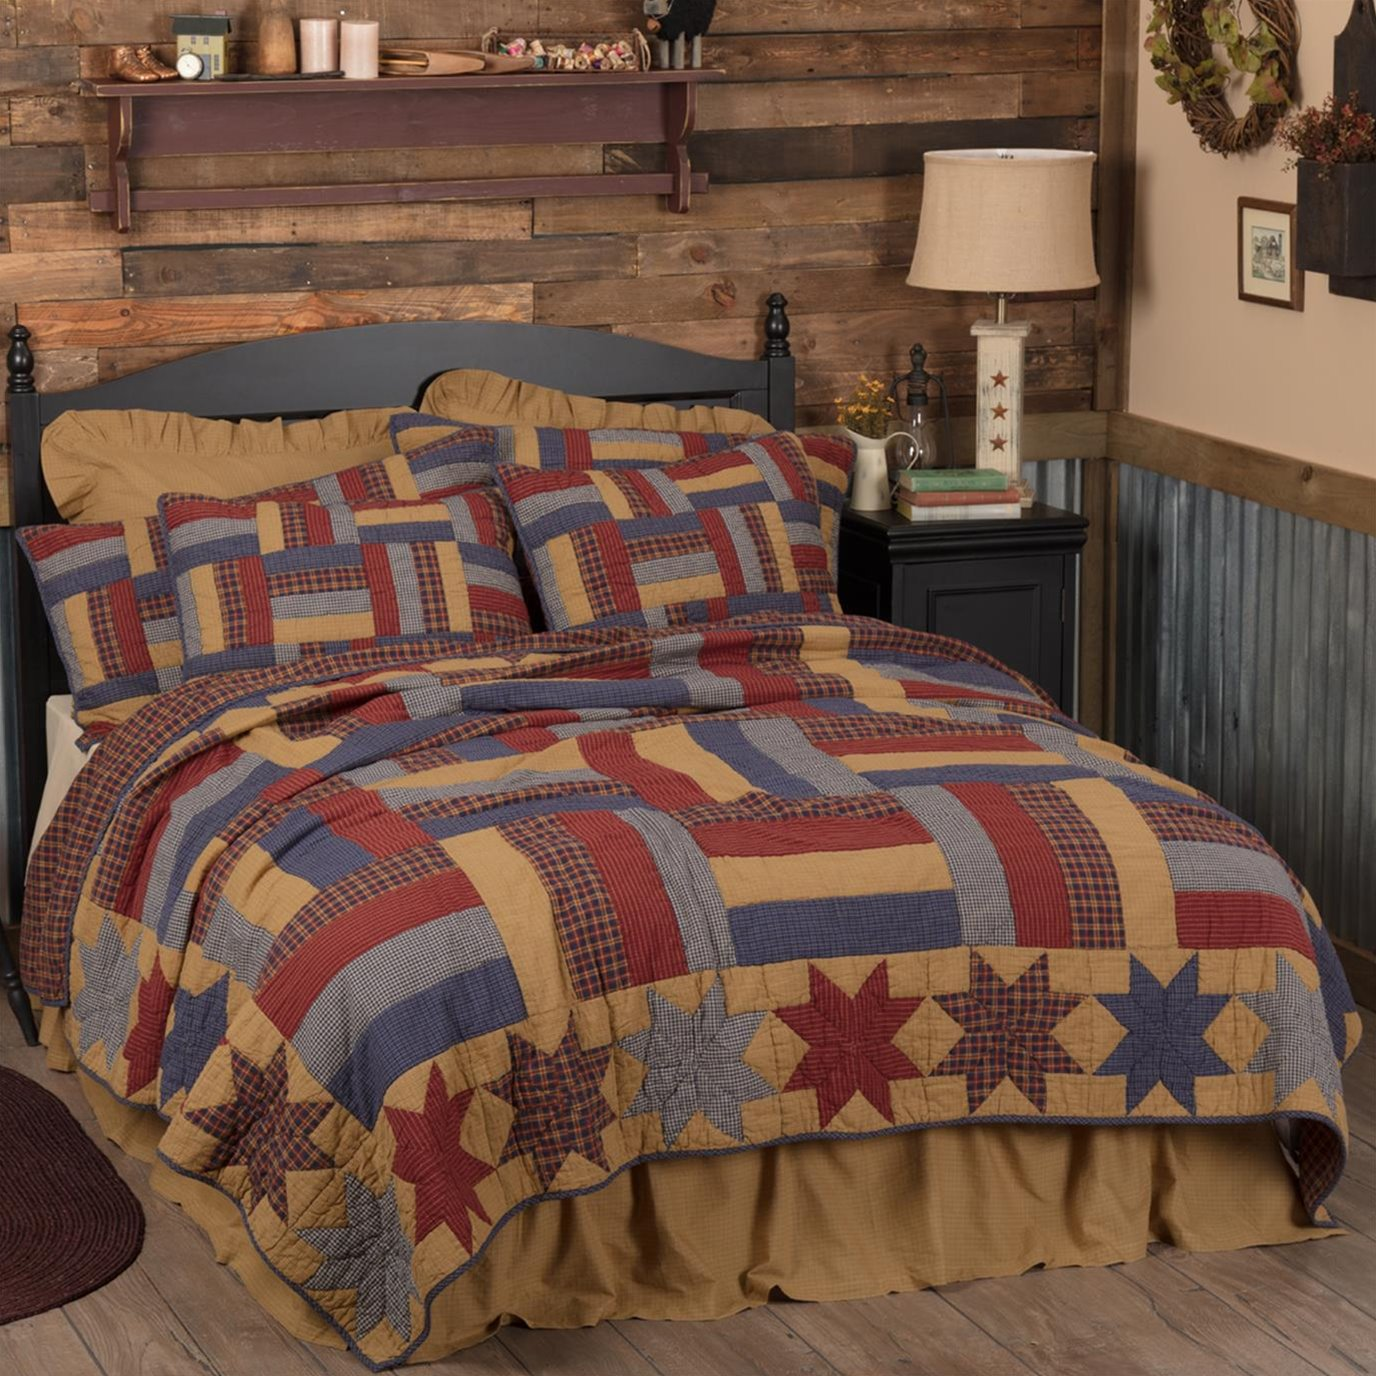 National Quilt Museum Kindred Stars and Bars King Quilt 105Wx95L